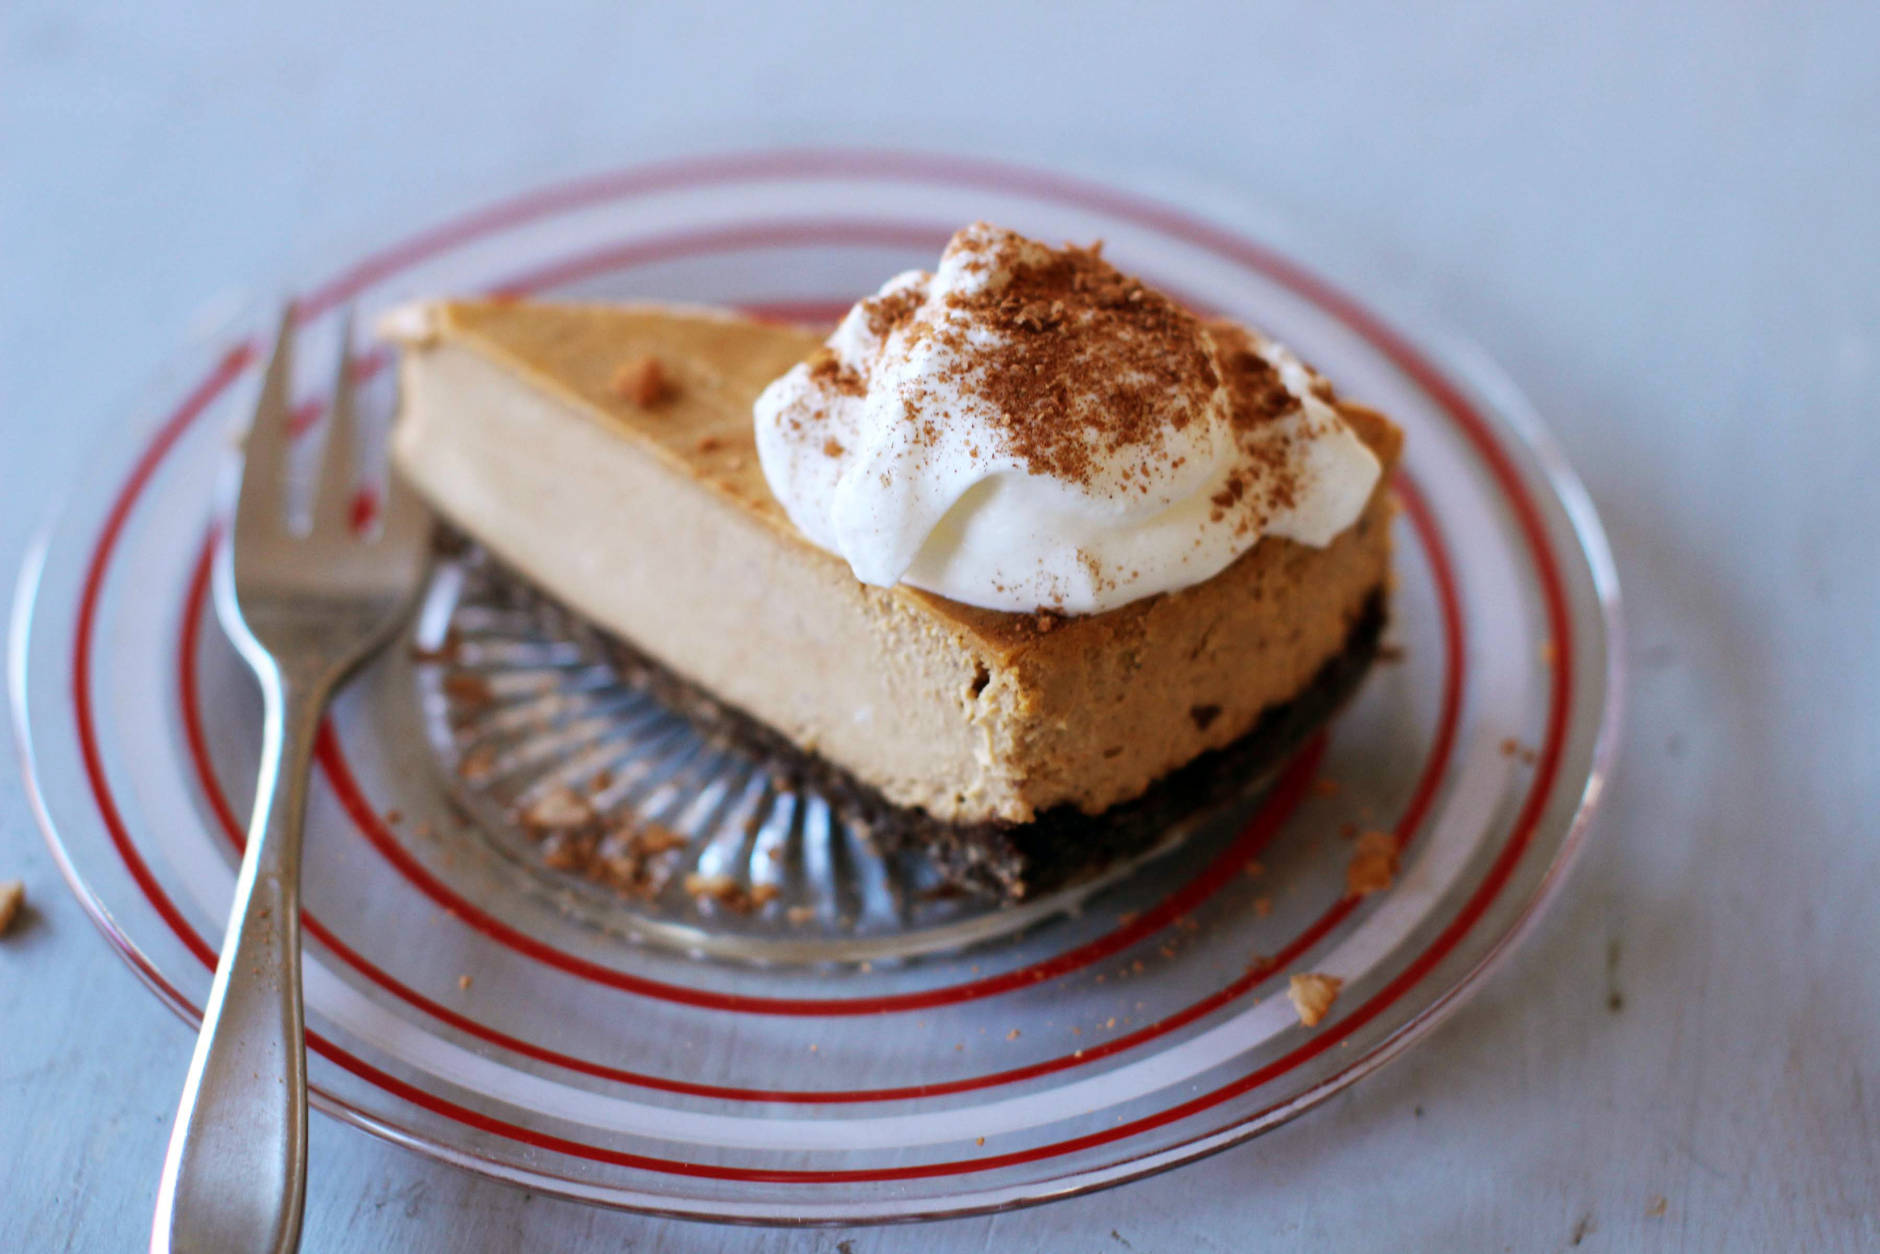 This Nov. 2, 2015 photo shows warm pumpkin bourbon cheesecake in Concord, NH. Serve this cheesecake hot, right out of the oven, topped with a little vanilla ice cream or sweetened whipped cream(AP Photo/Matthew Mead)